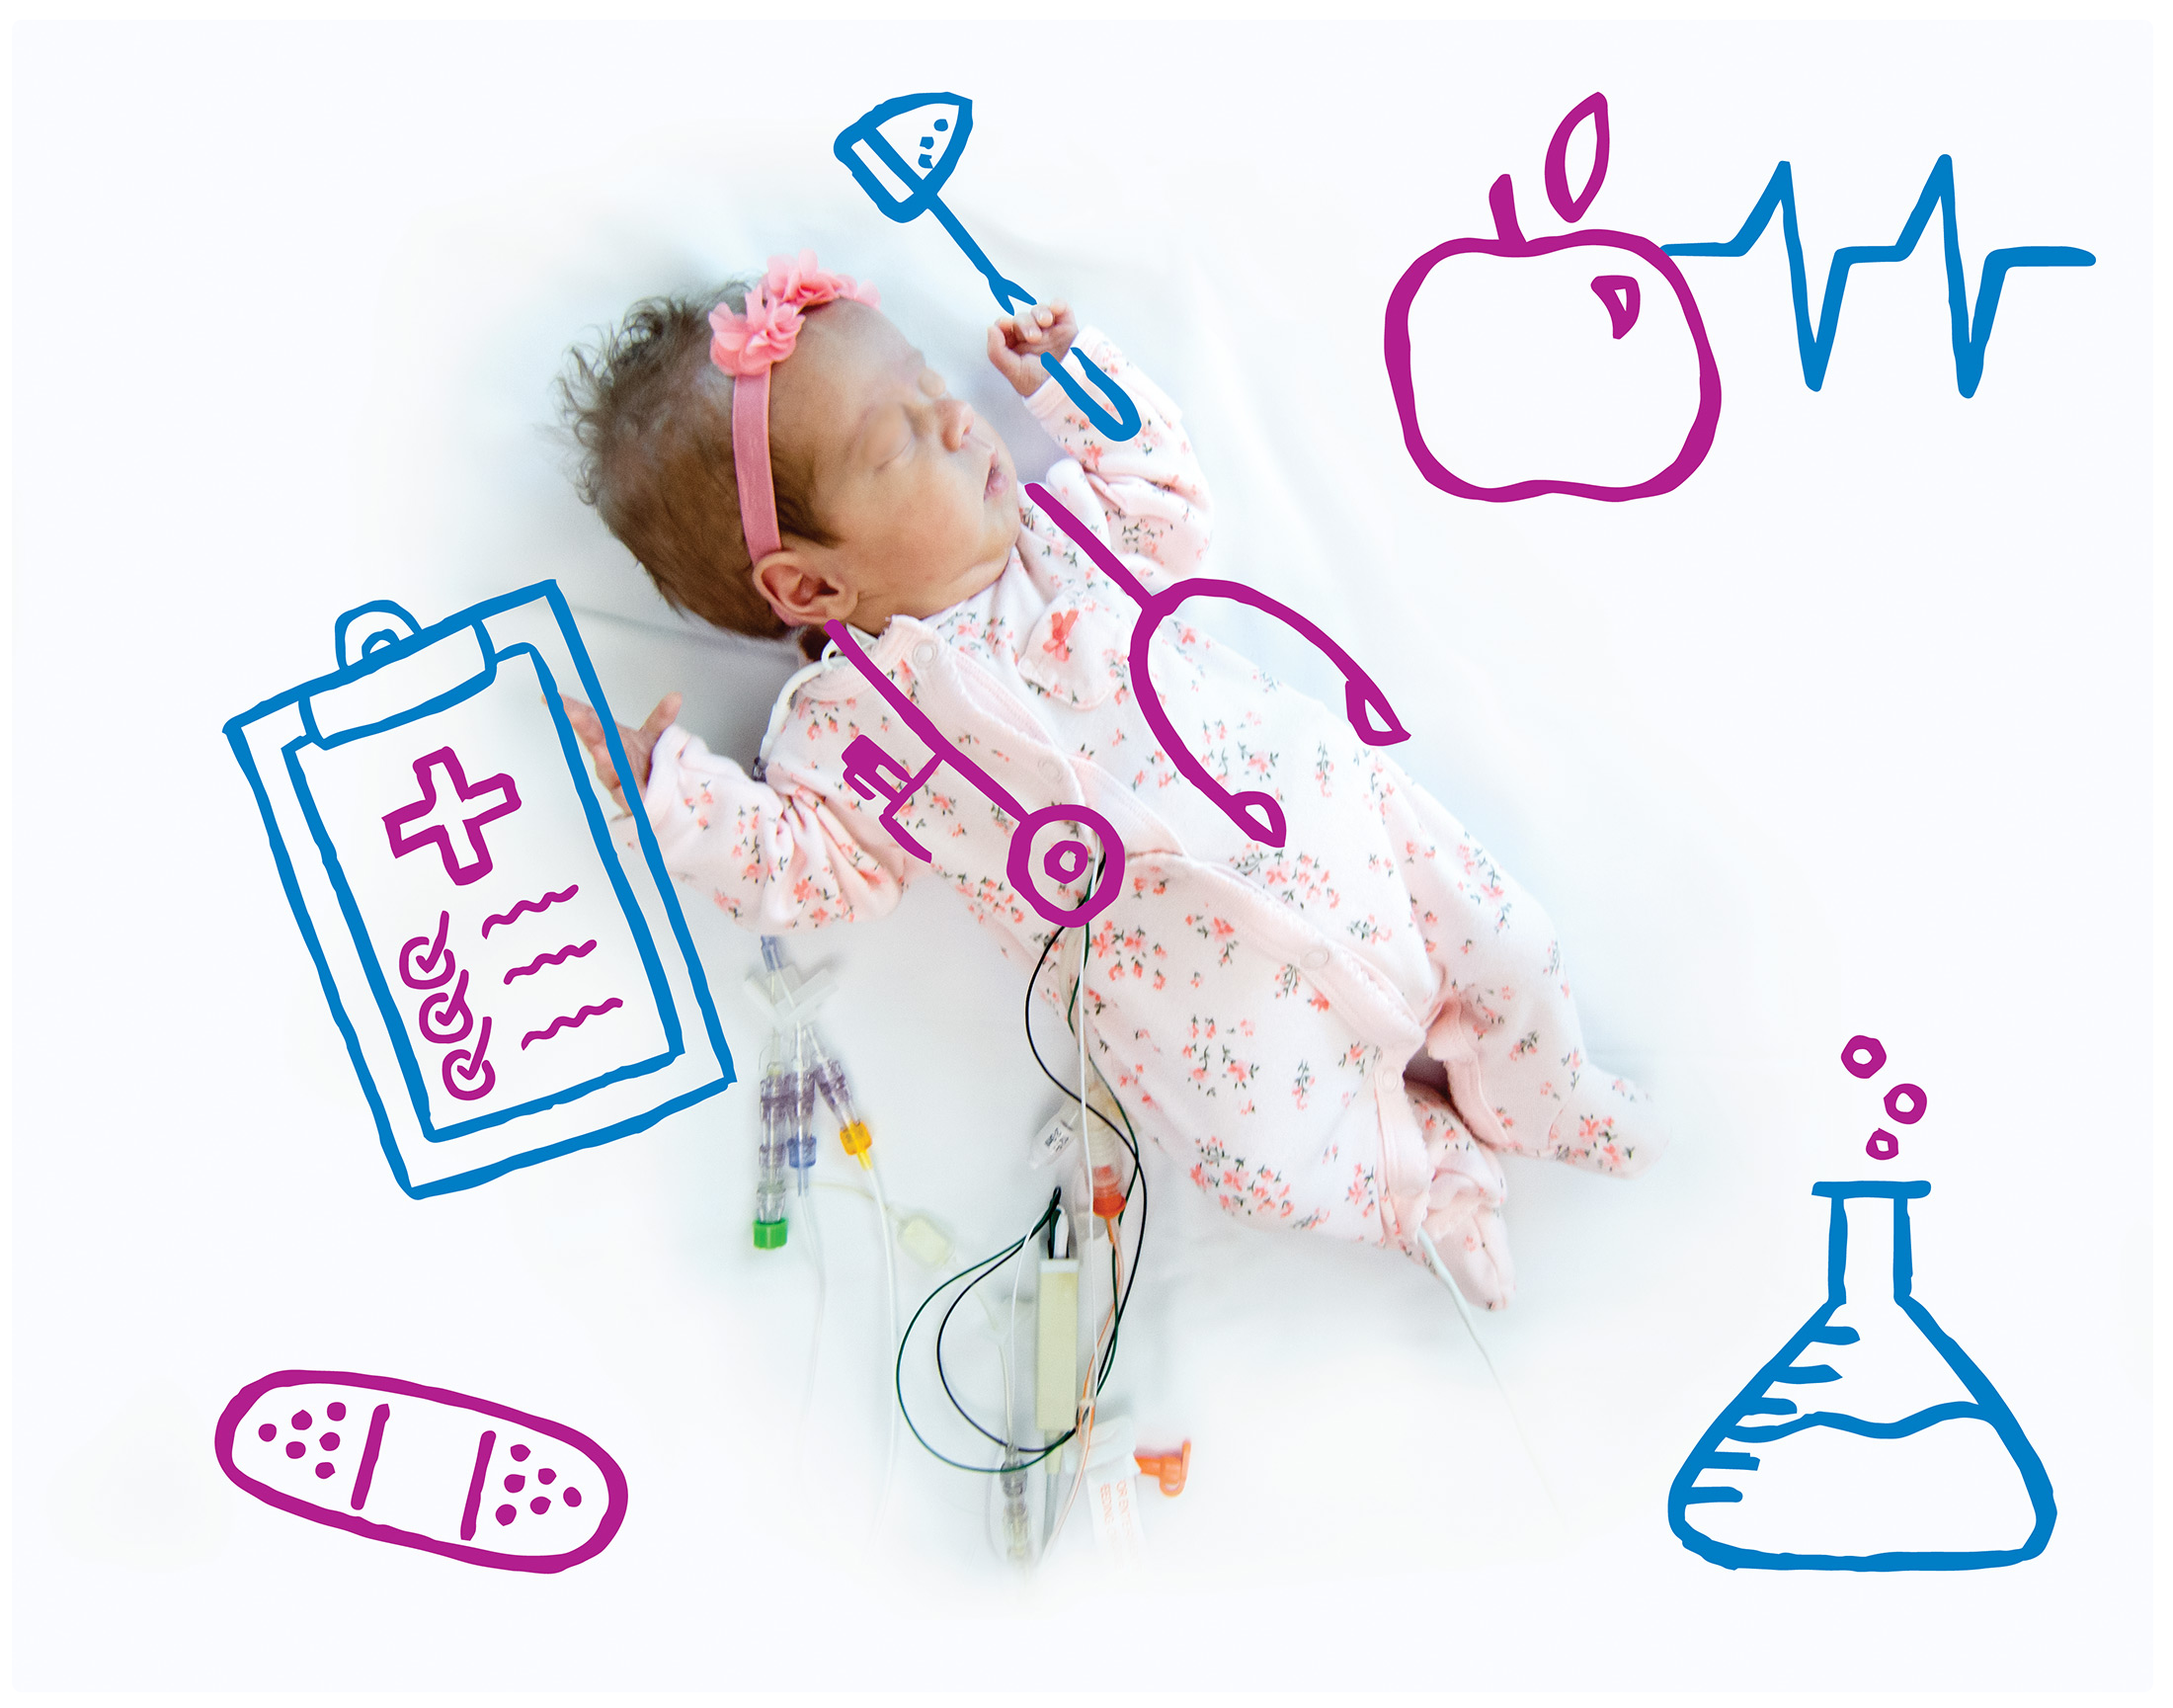 neonatal nurse Find out about the types of jobs you could pursue in neonatal nursing read on to  learn more about career options along with job duties, salary and.